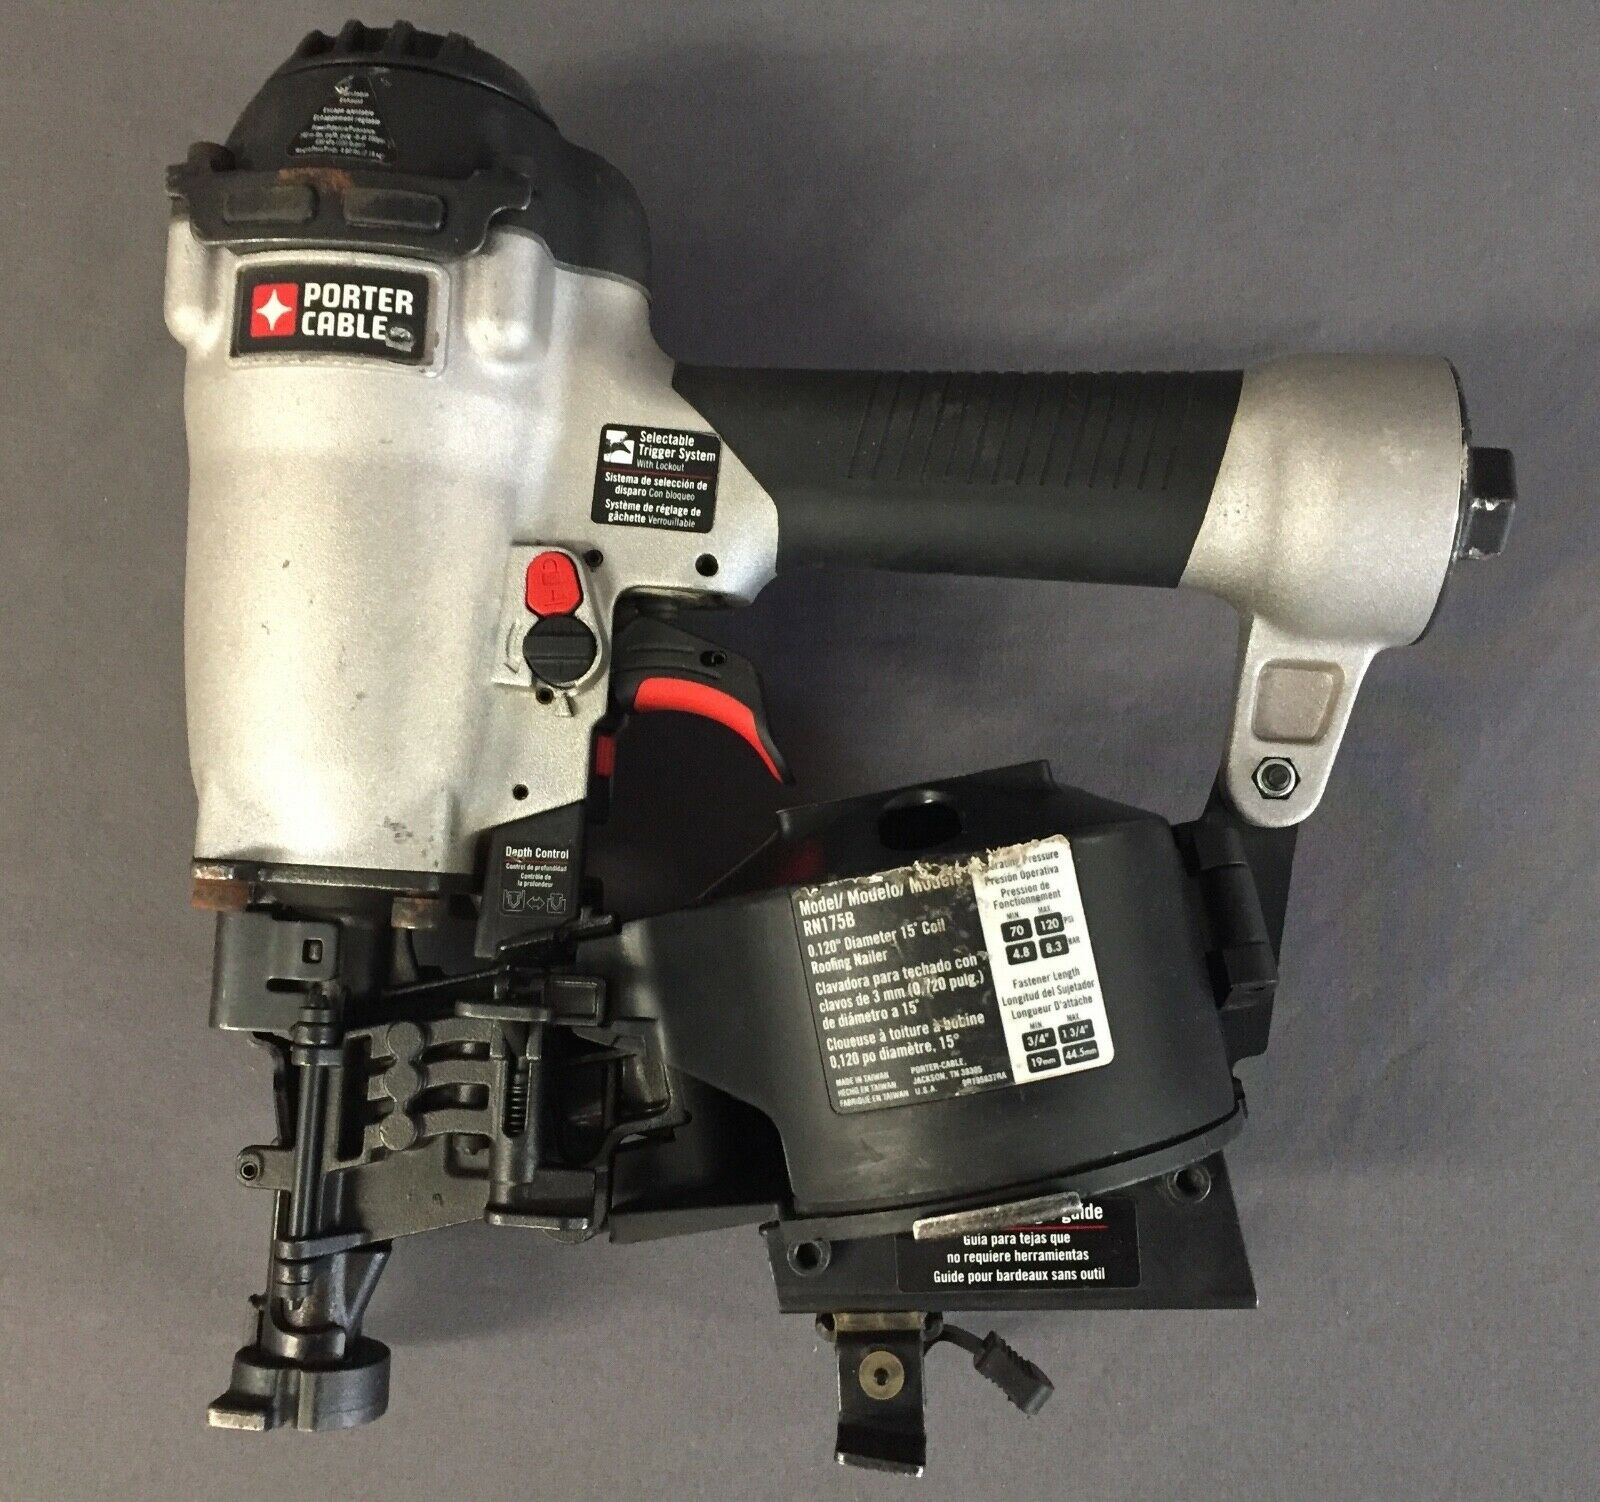 Porter-Cable 15 Degree 1-3 4 in. Coil Roofing Nailer RN175B